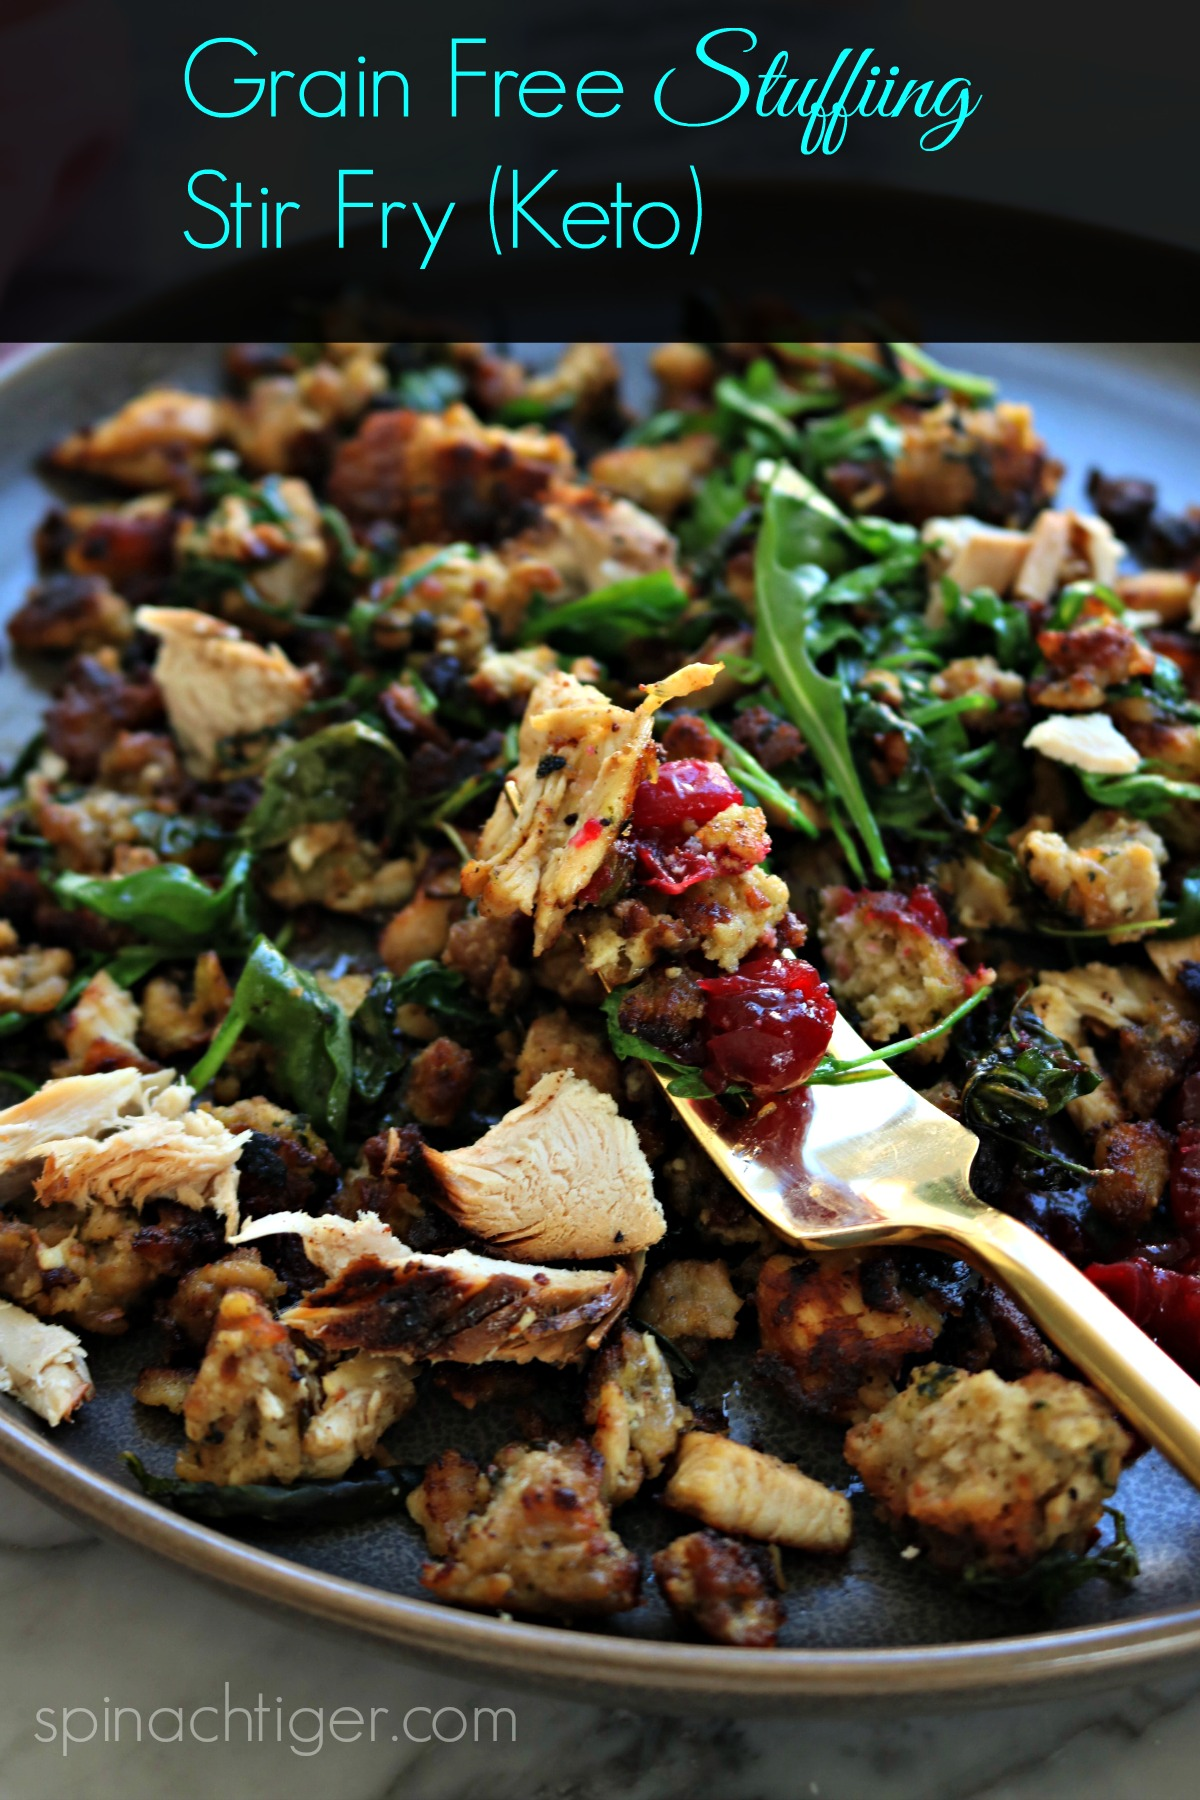 Grain Free stuffing with sugar free cranberry sauce from Spinach Tiger